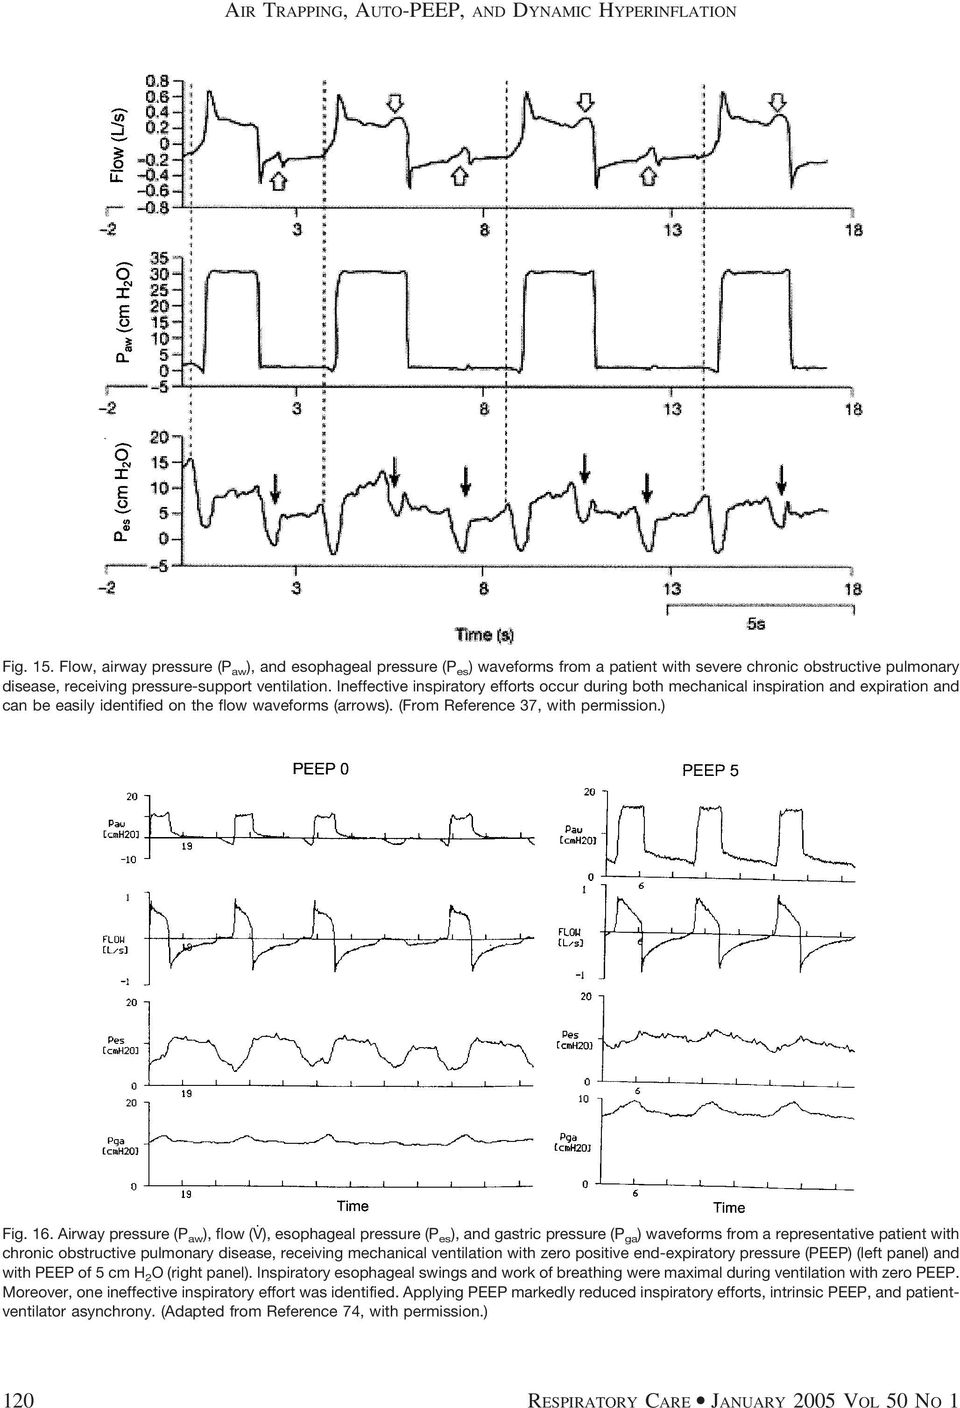 Airway pressure (P aw ), flow (V ), esophageal pressure (P es ), and gastric pressure (P ga ) waveforms from a representative patient with chronic obstructive pulmonary disease, receiving mechanical